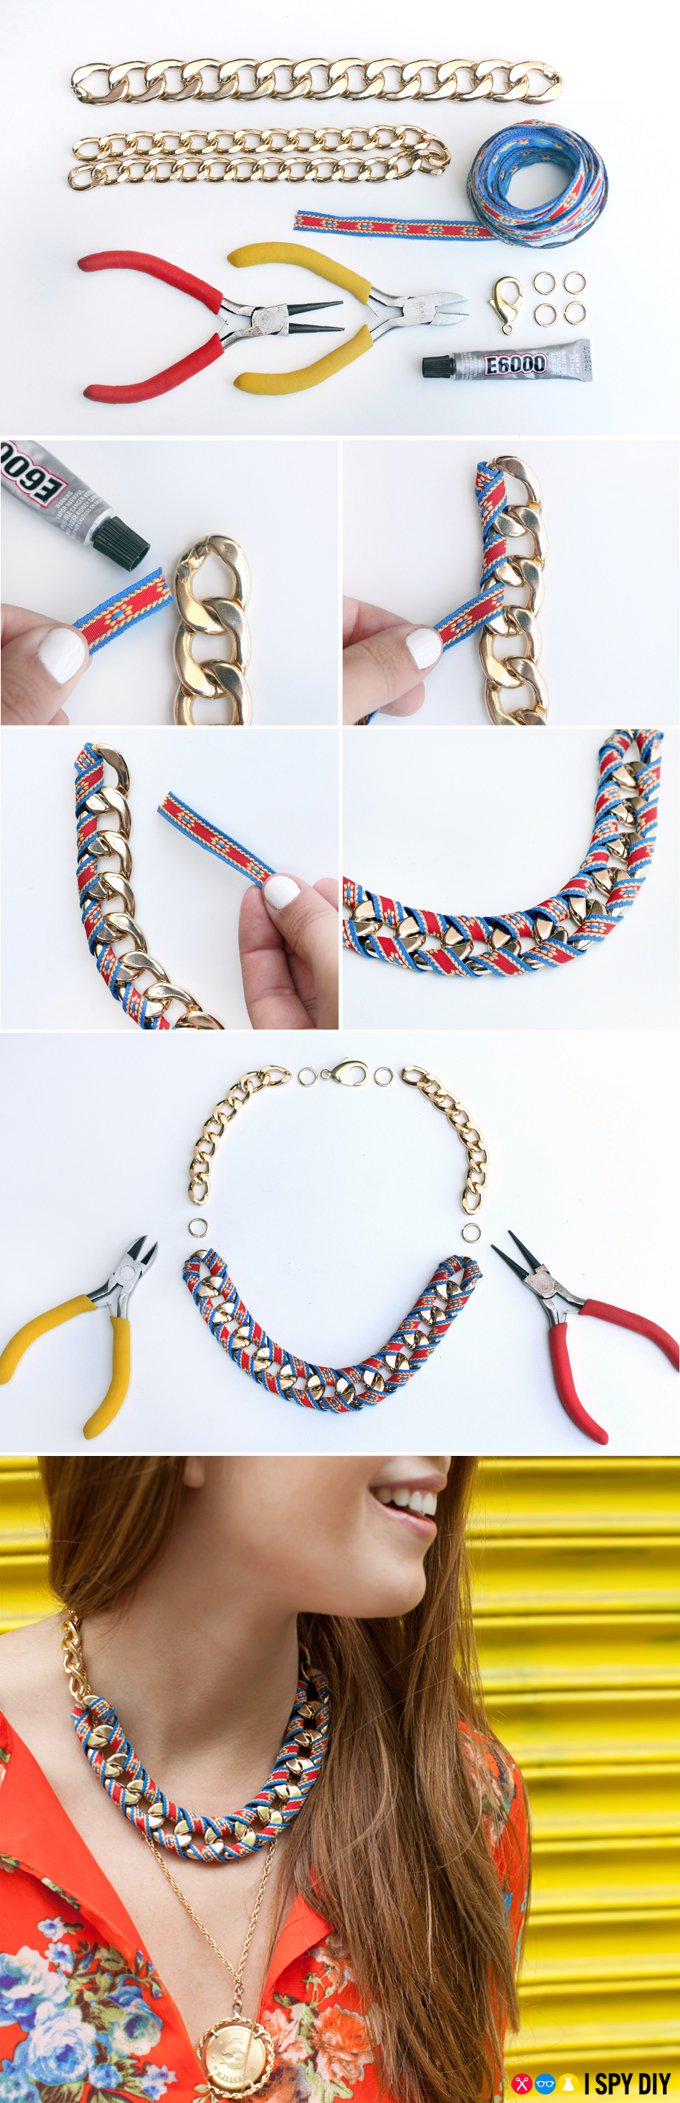 diy-necklace-jewelry-tutorial-craft-ideas Step by Step Tutorial for Jewelry Making